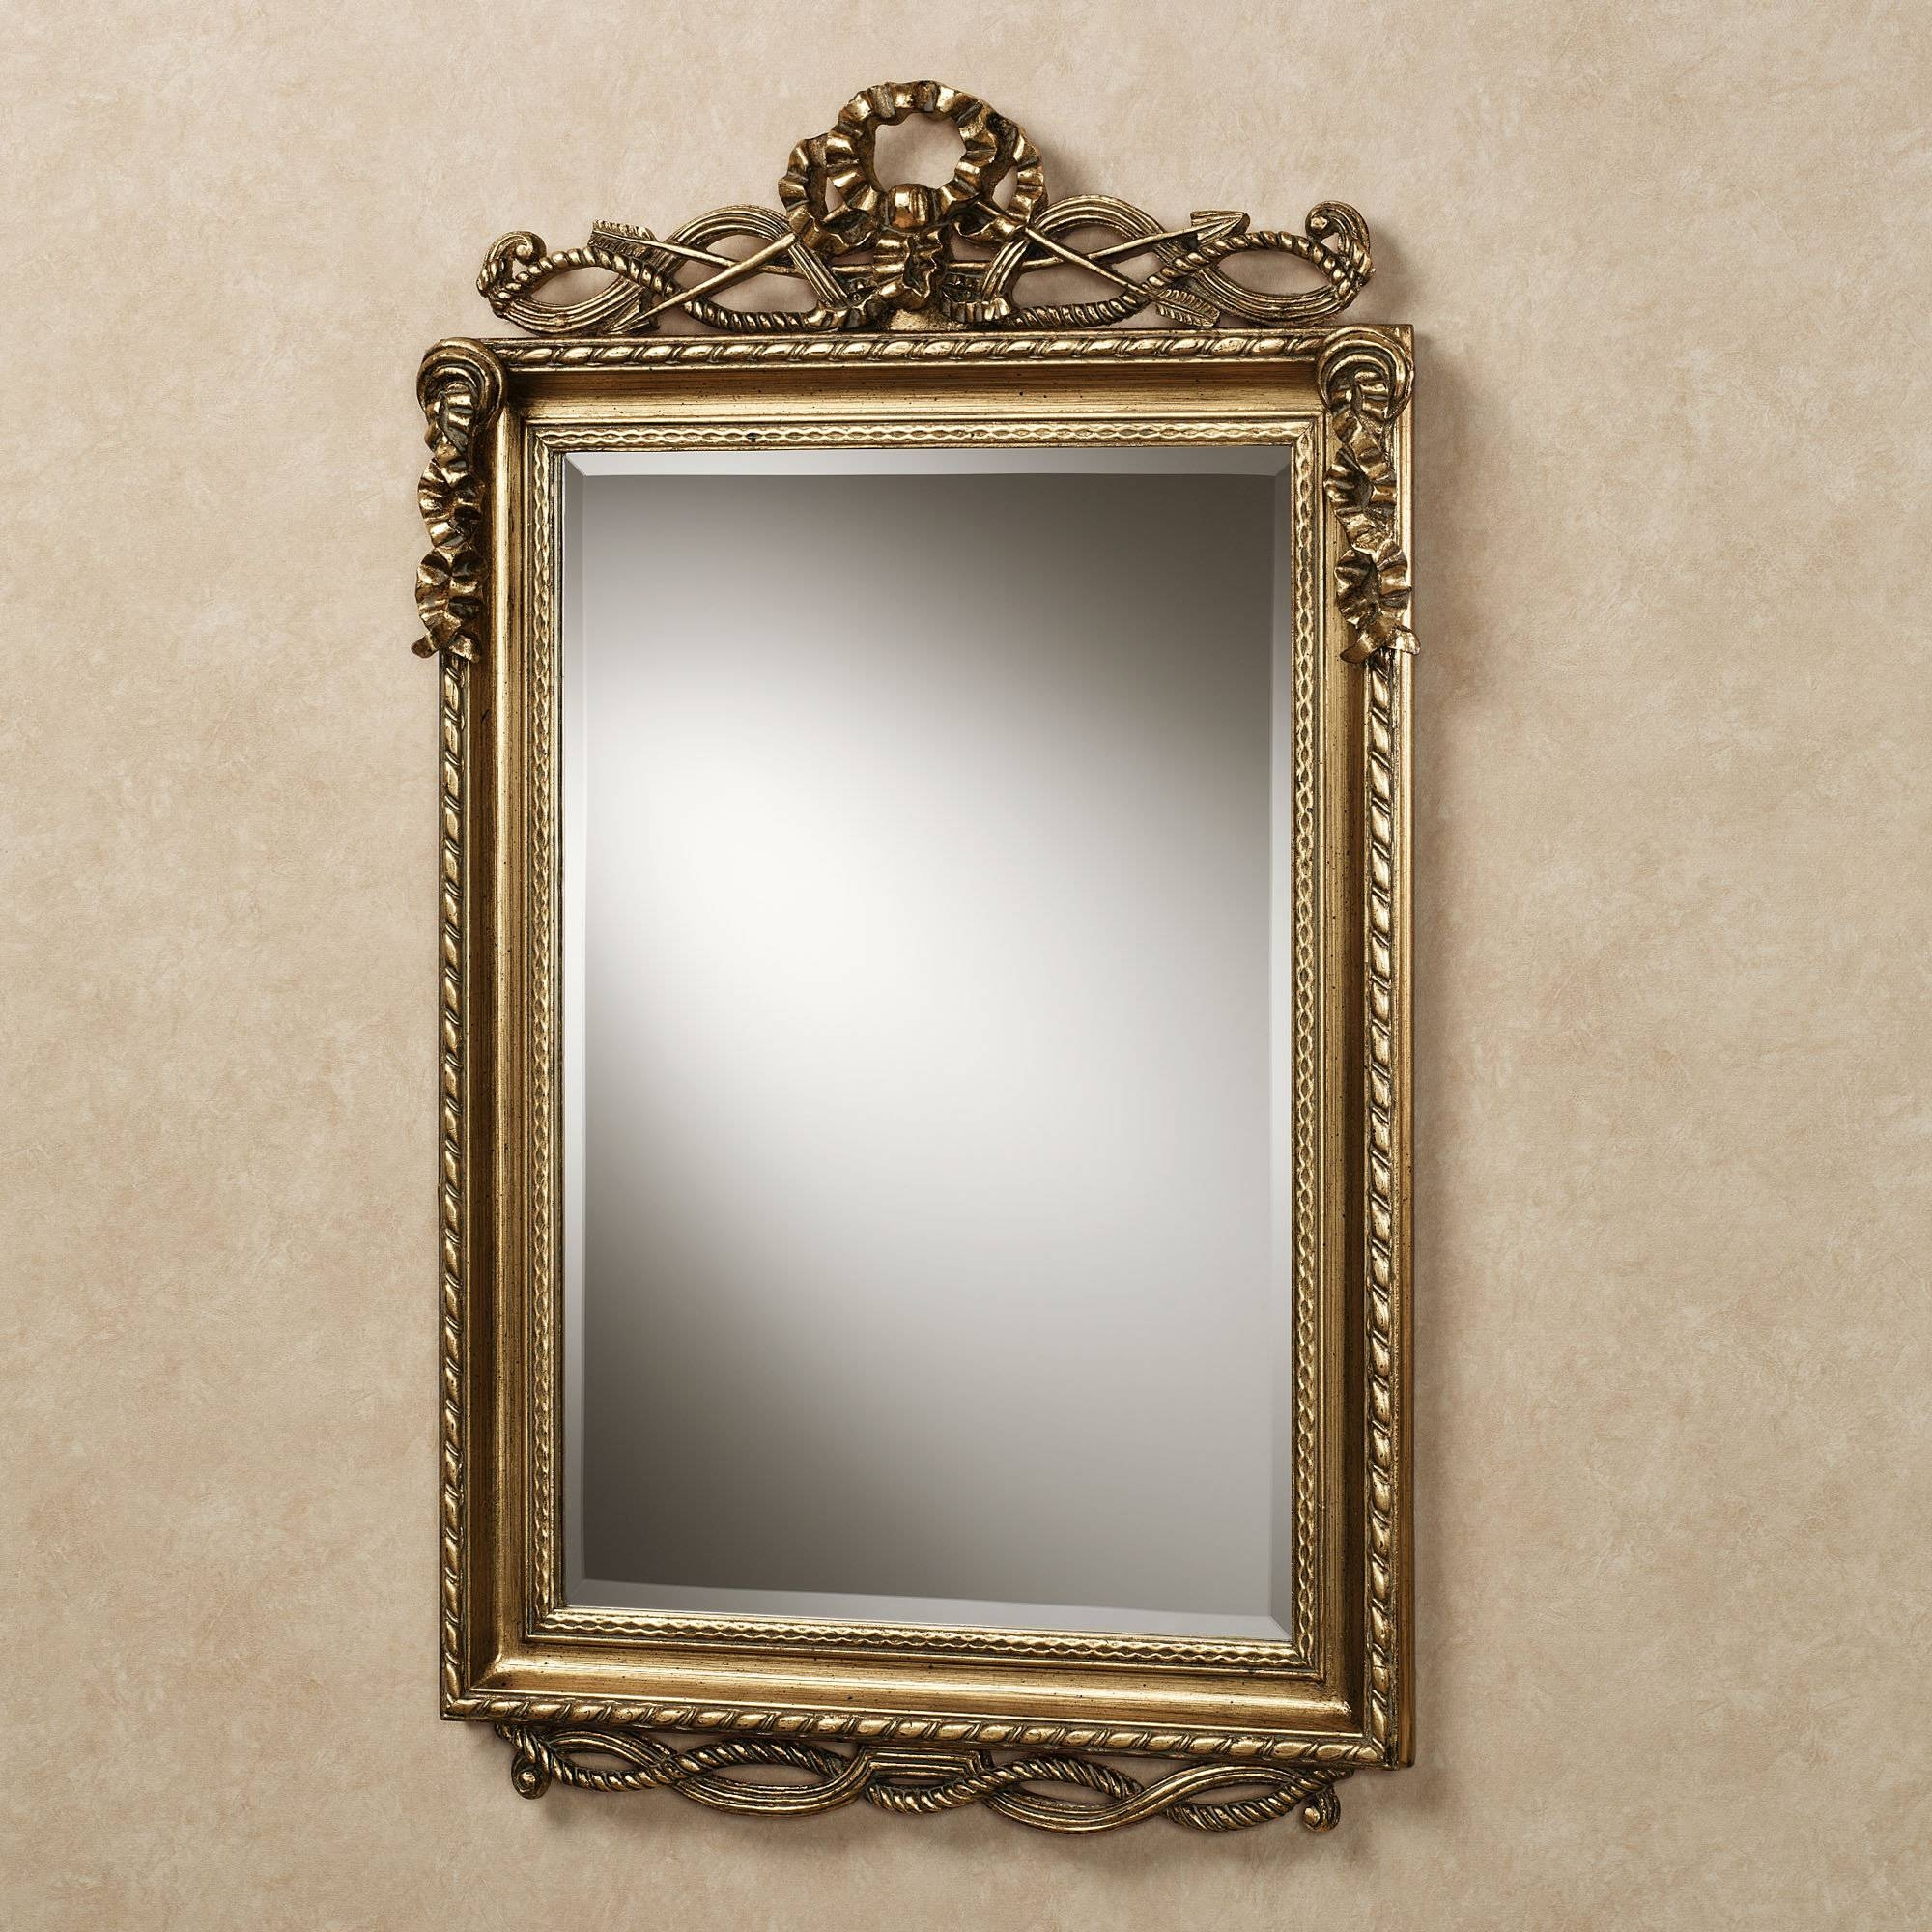 Antique Vintage Wall Mirrors : Doherty House - A Beautiful Of throughout Old Fashioned Wall Mirrors (Image 2 of 15)